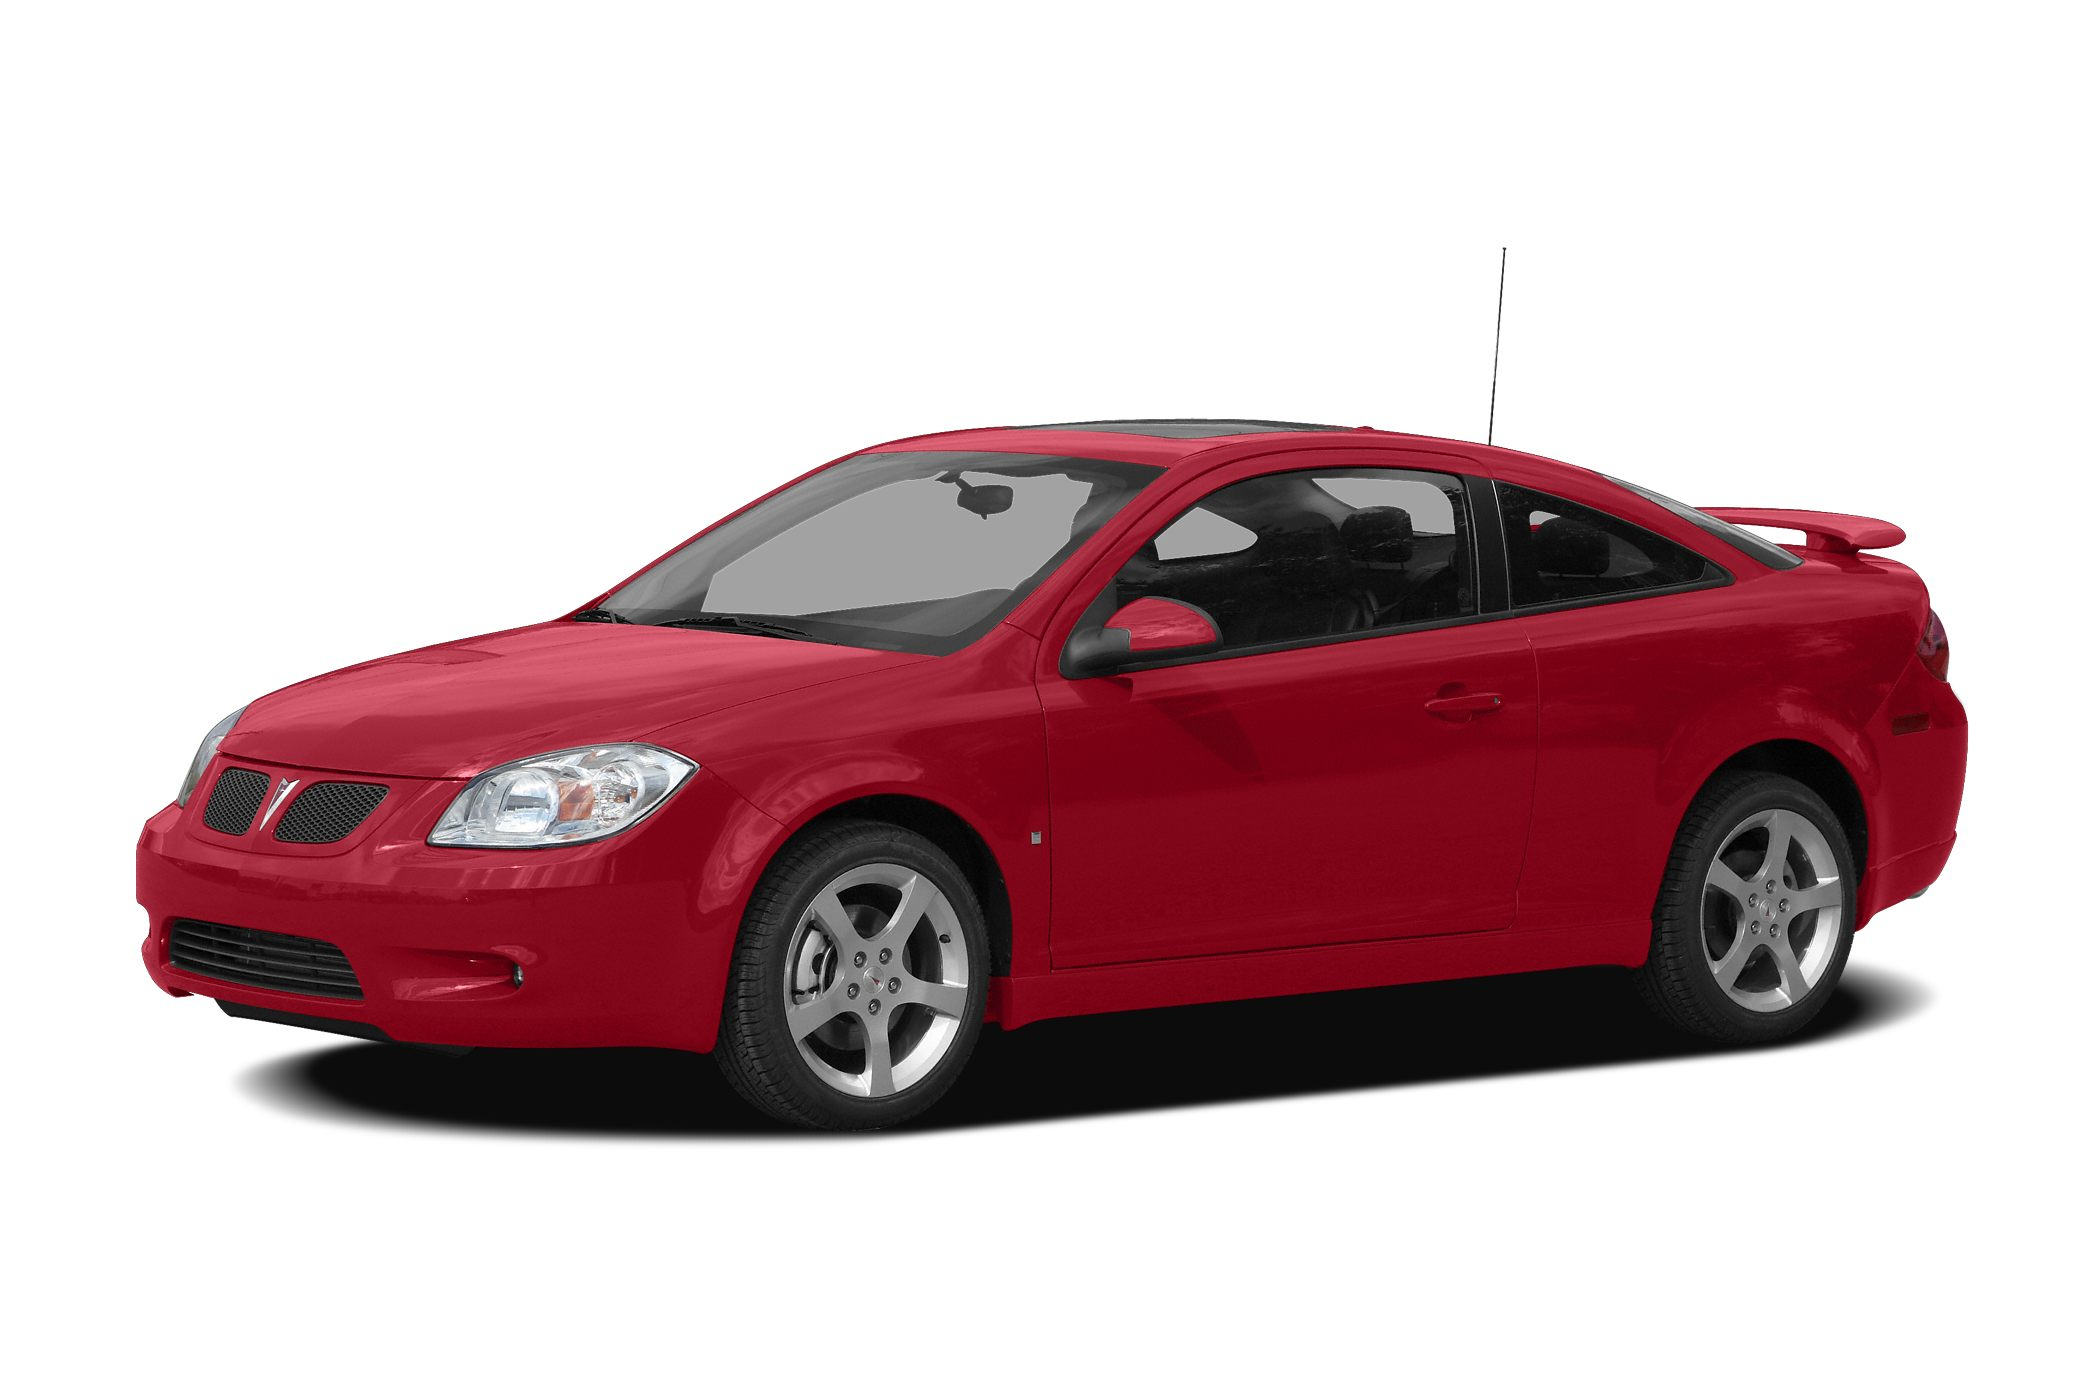 2008 Pontiac G5 Base Vehicle Options Air conditioning Passenger Airbag Steel W